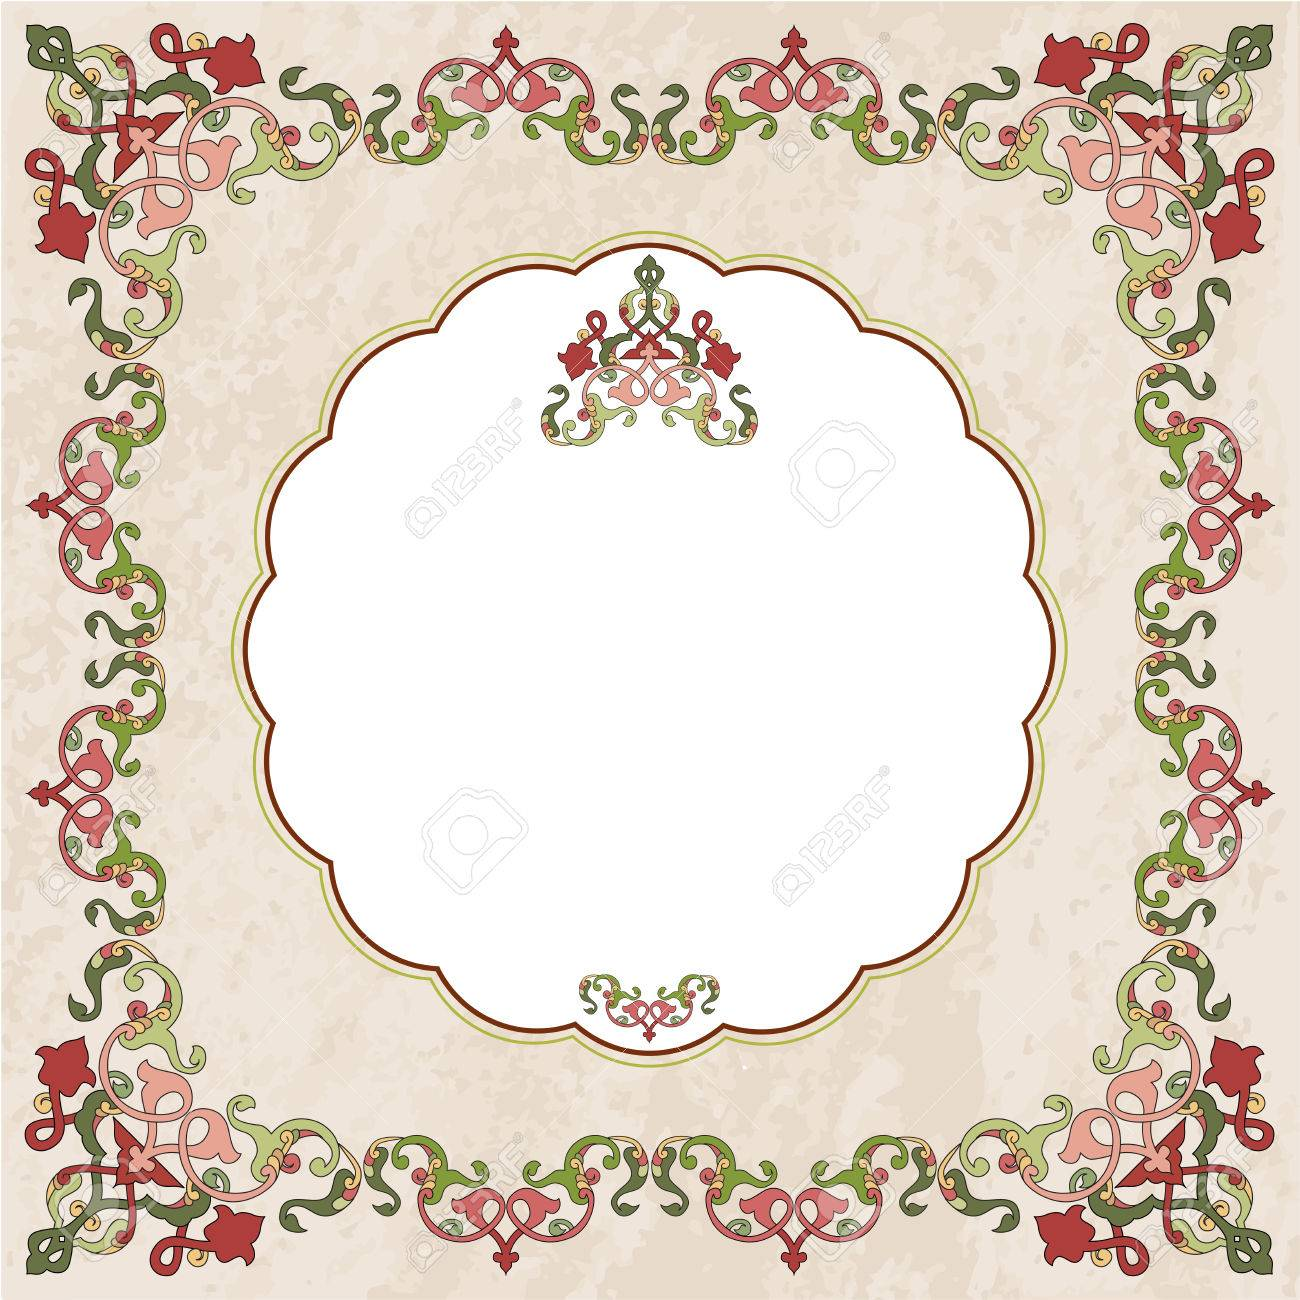 Borders And Frames Are Designed With Islamic Motifs Royalty Free ...